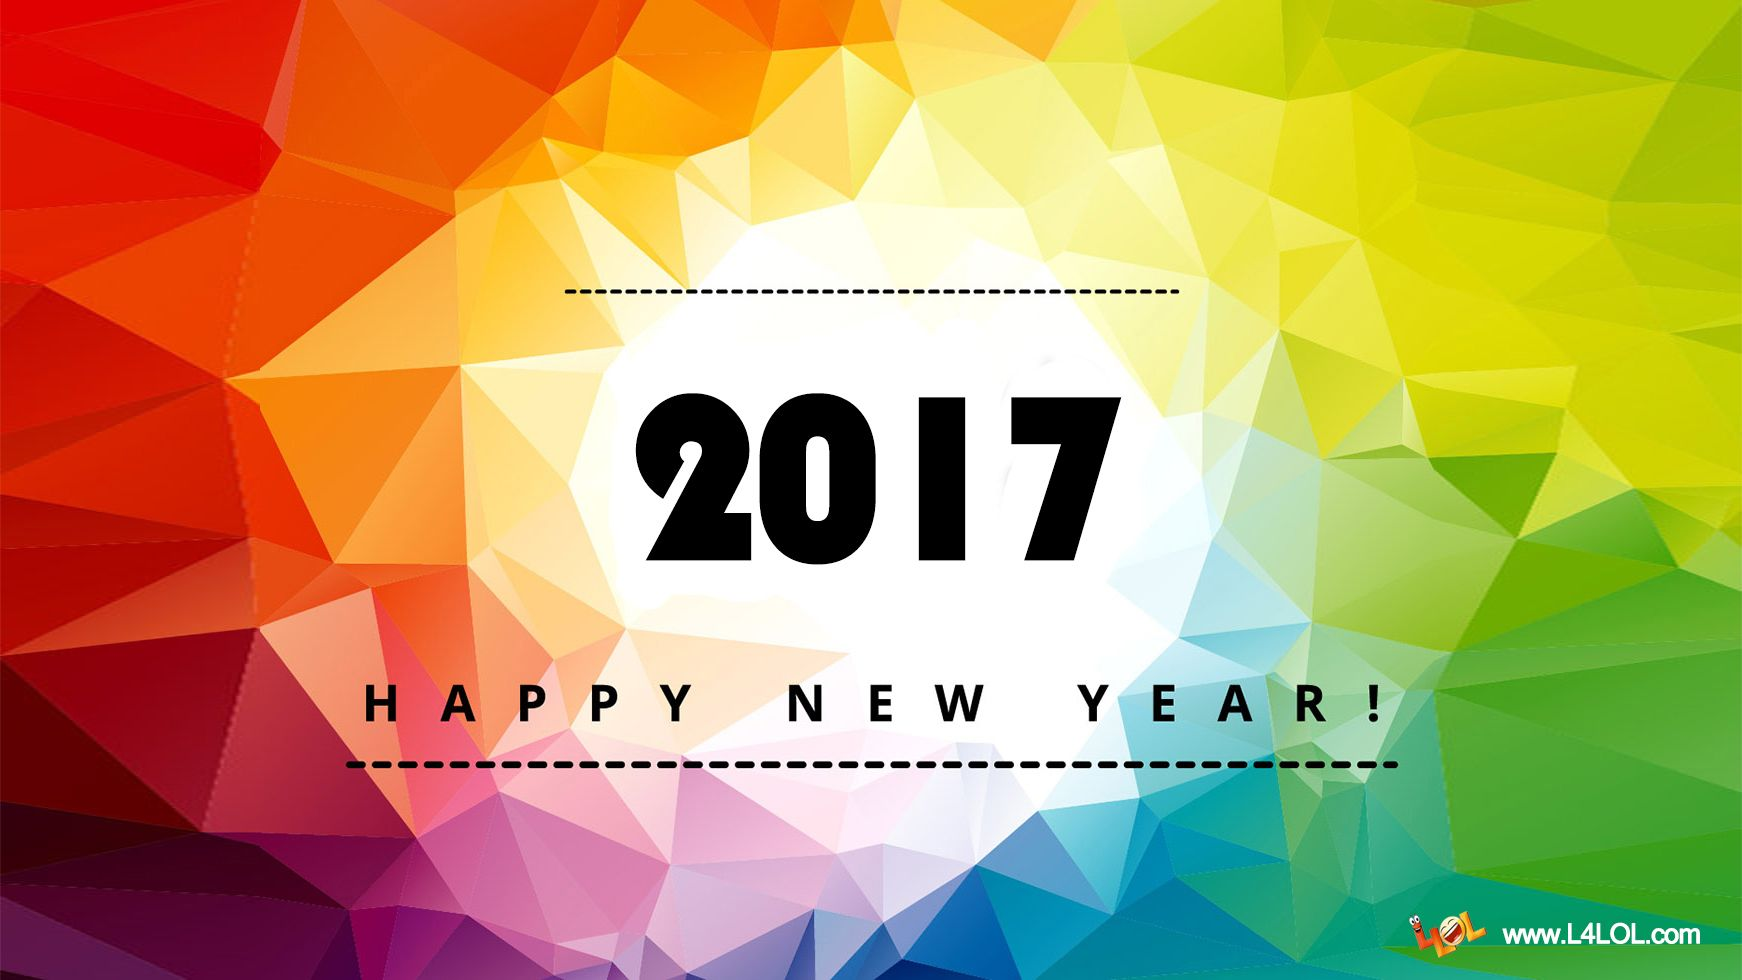 Hd wallpaper new 2017 - Happy New Year 2017 Hd Images Http Www Merrychristmaswishes2u Com